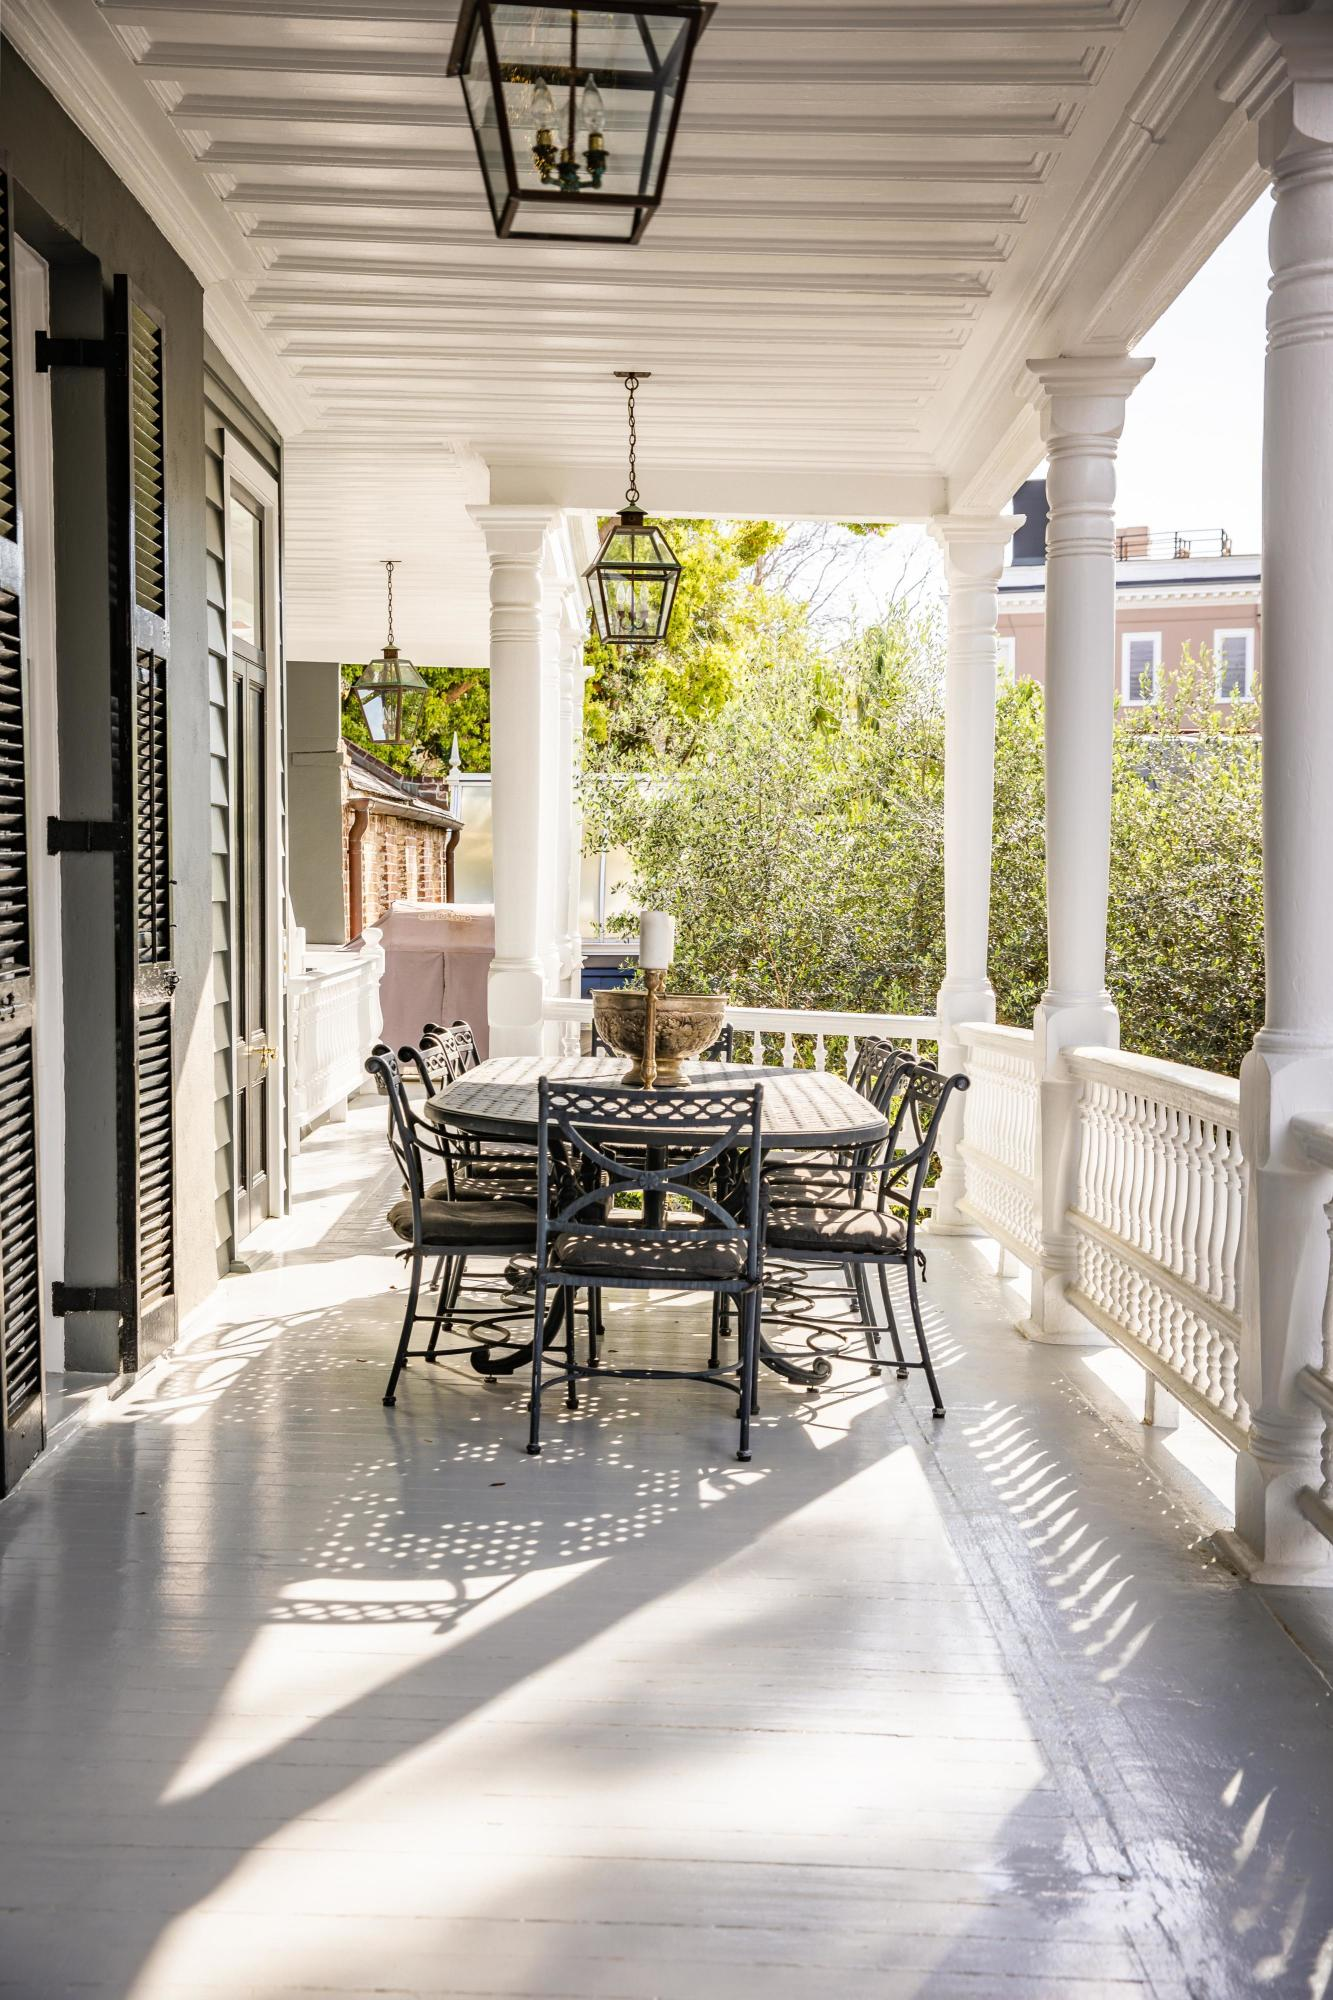 South of Broad Homes For Sale - 18 Church, Charleston, SC - 90